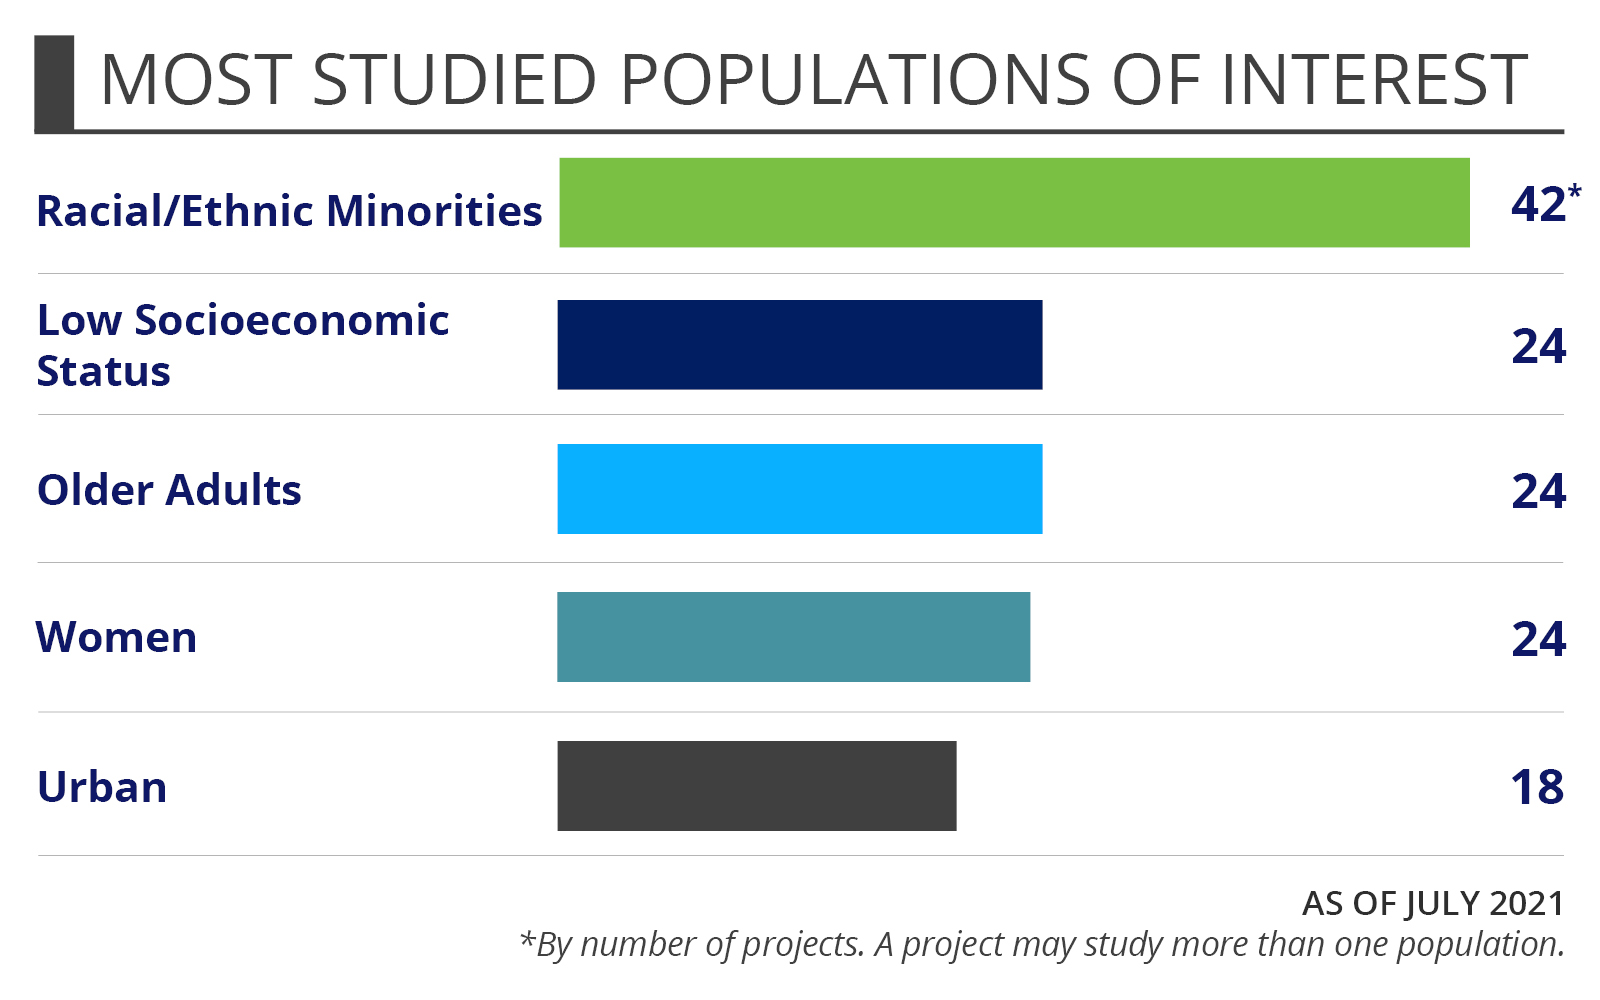 Shared Decision Making Most Studied Populations of Interest: Racial/ethnic minorities (89) Low socioecomic status (57) Older adults (44) Women (41) Urban (39) As of September 2017.